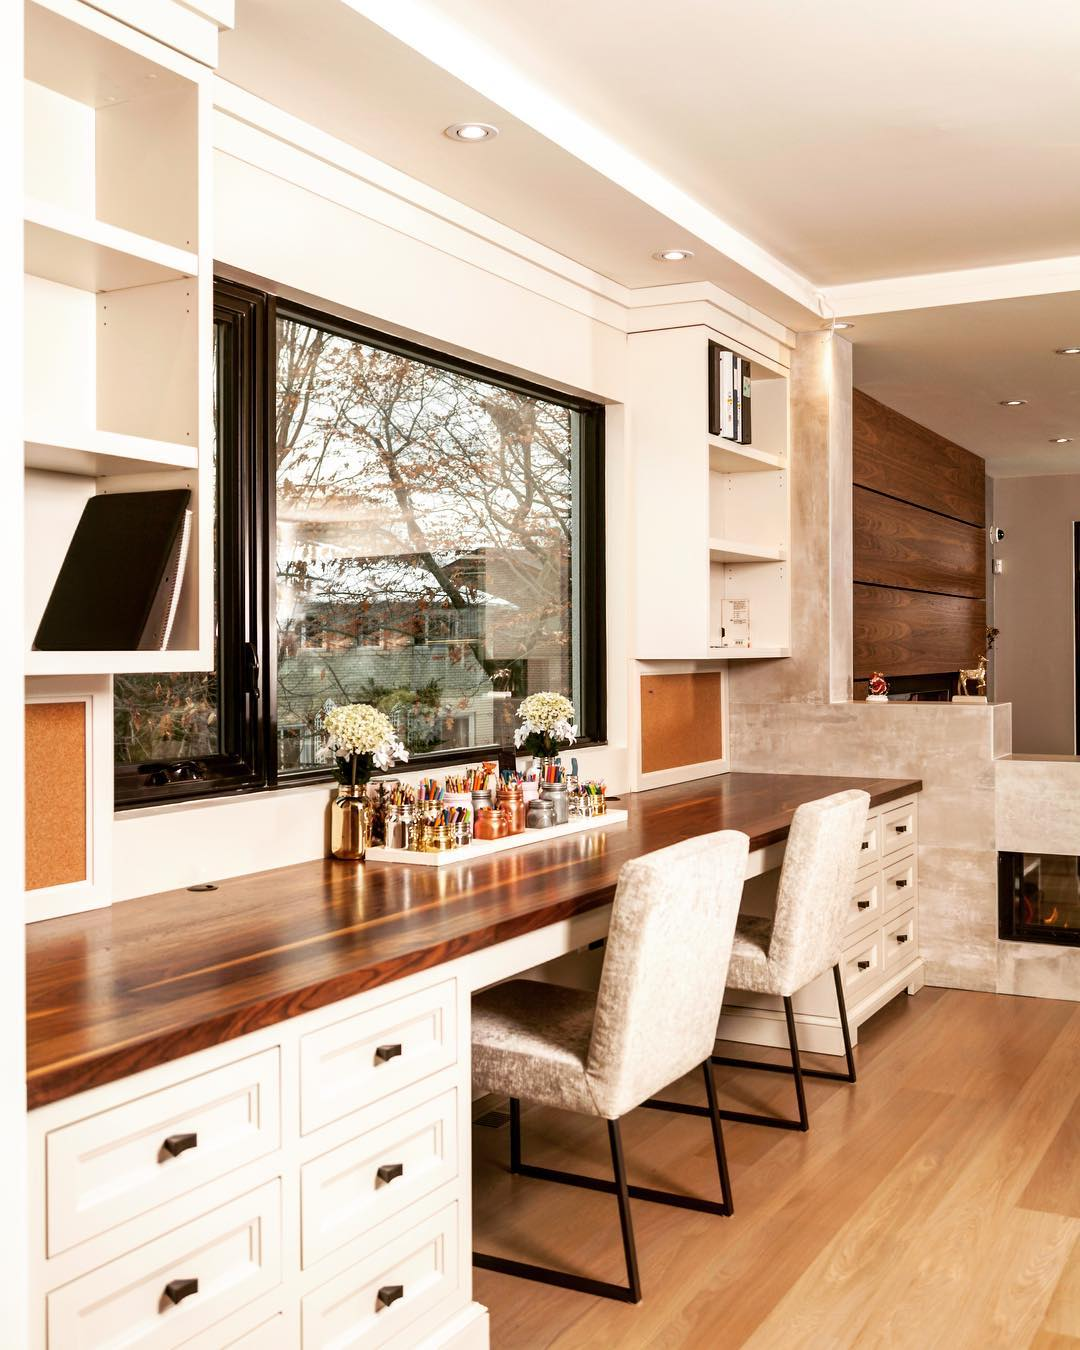 Dreamy office with lots of counter space and storage to keep organized and clean this beautiful desk features white cabinets shelves and a pop of wood